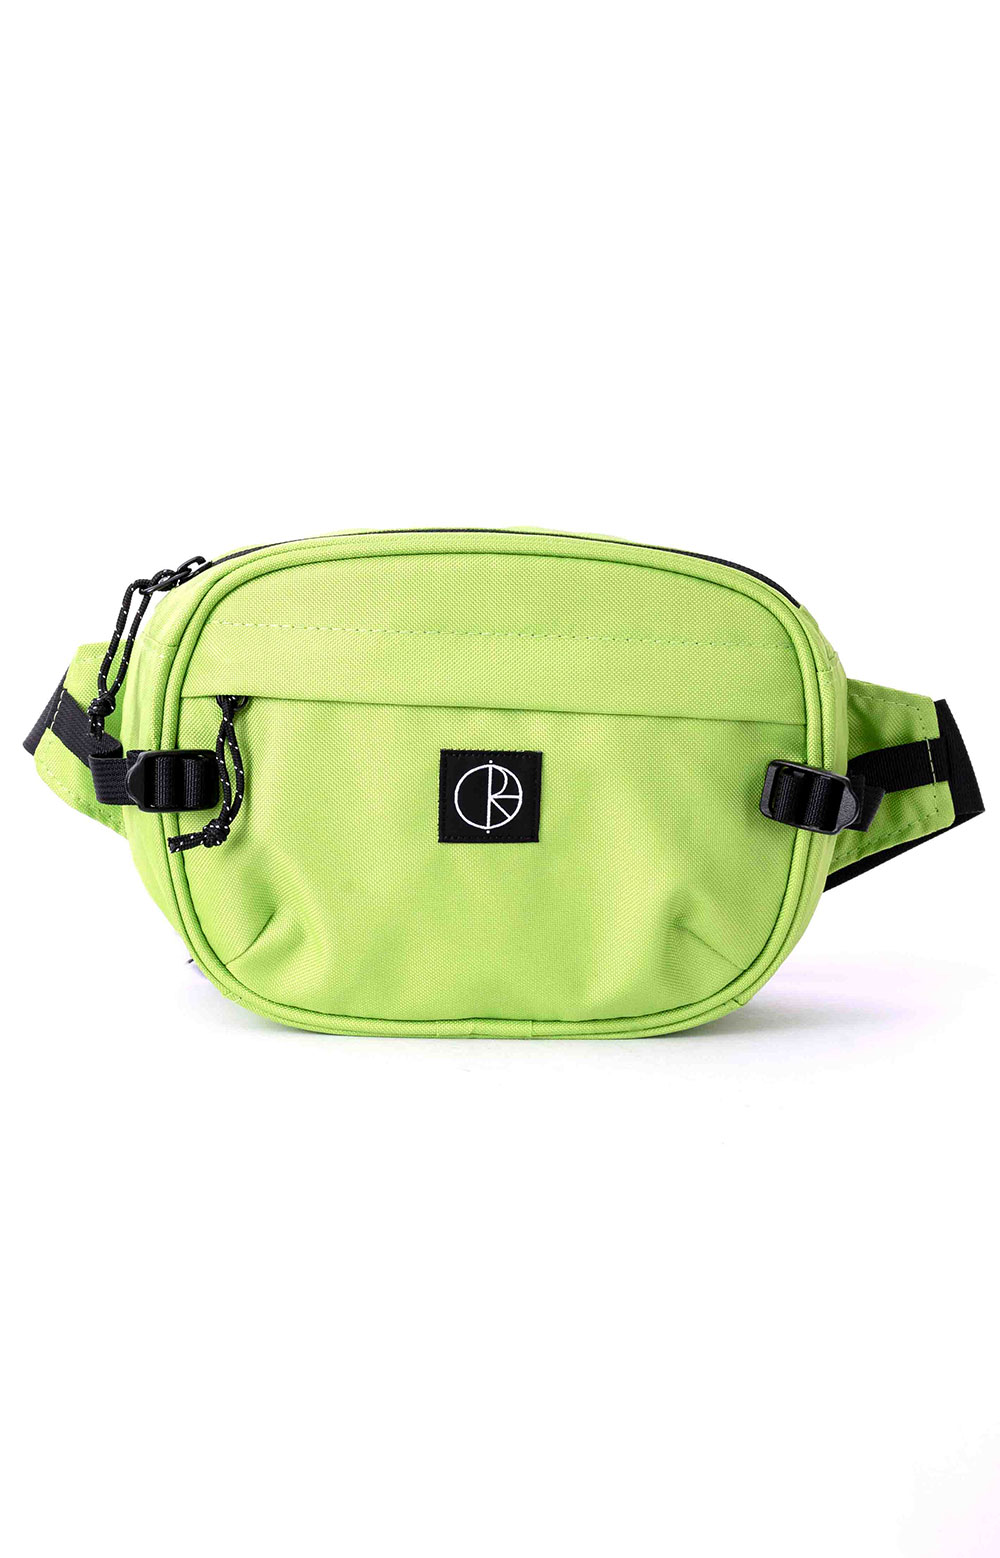 Cordura Hip Bag - Lime